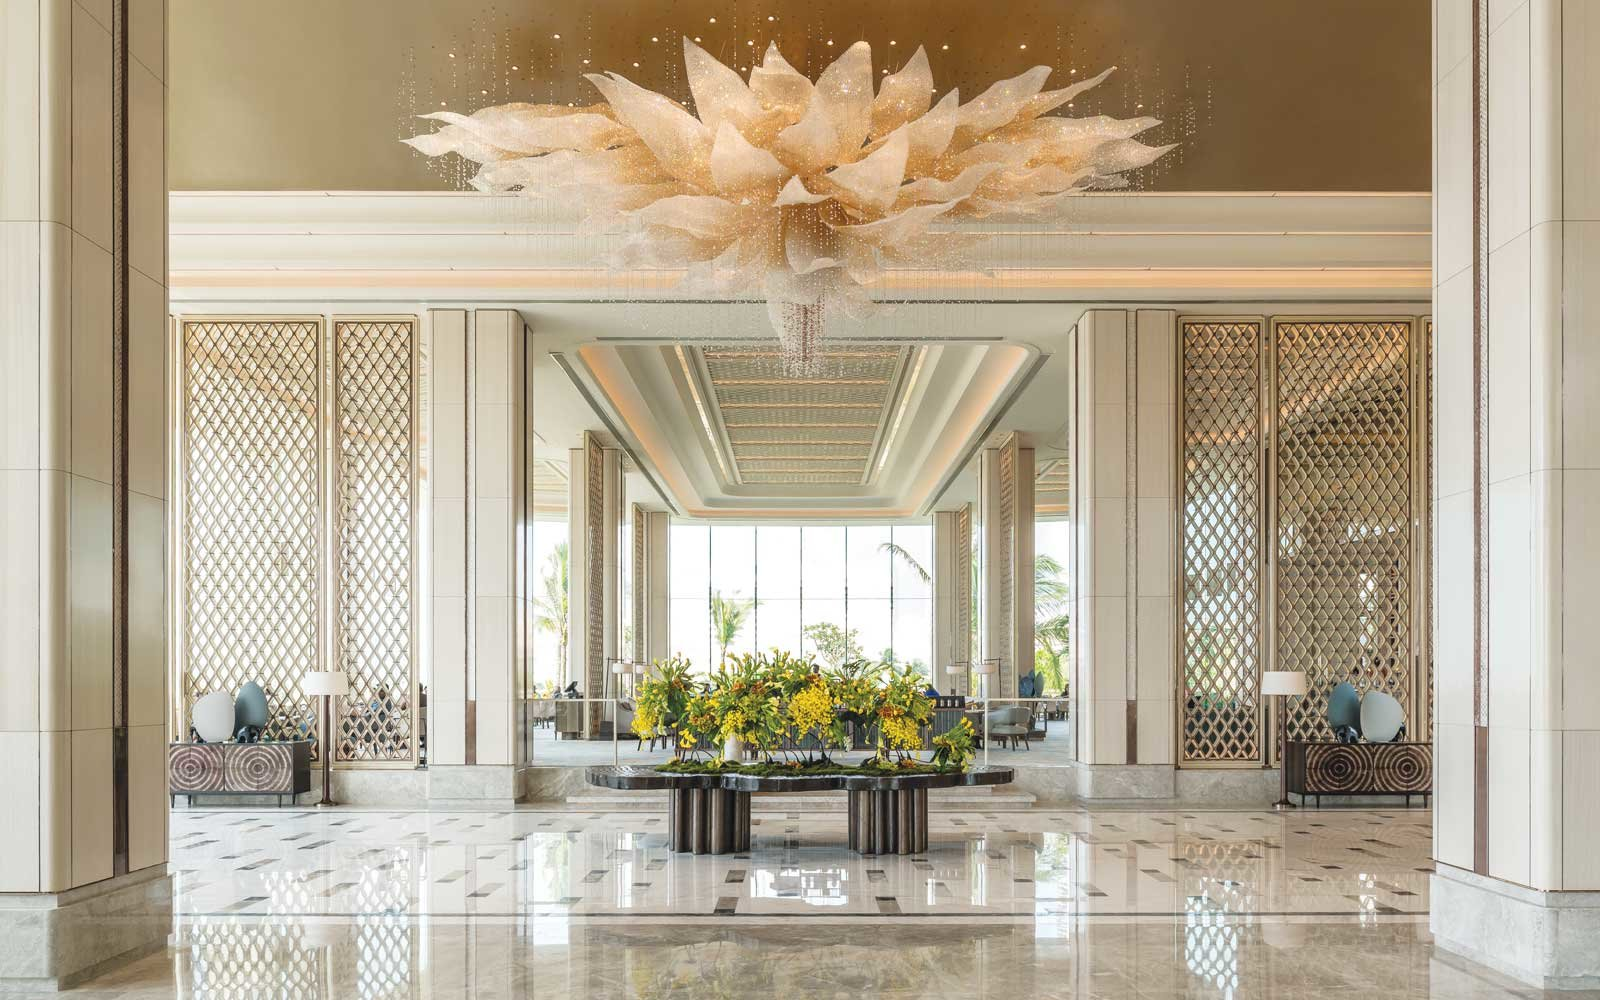 Lobby of the Shangri-La Hotel in Colombo, Sri Lanka